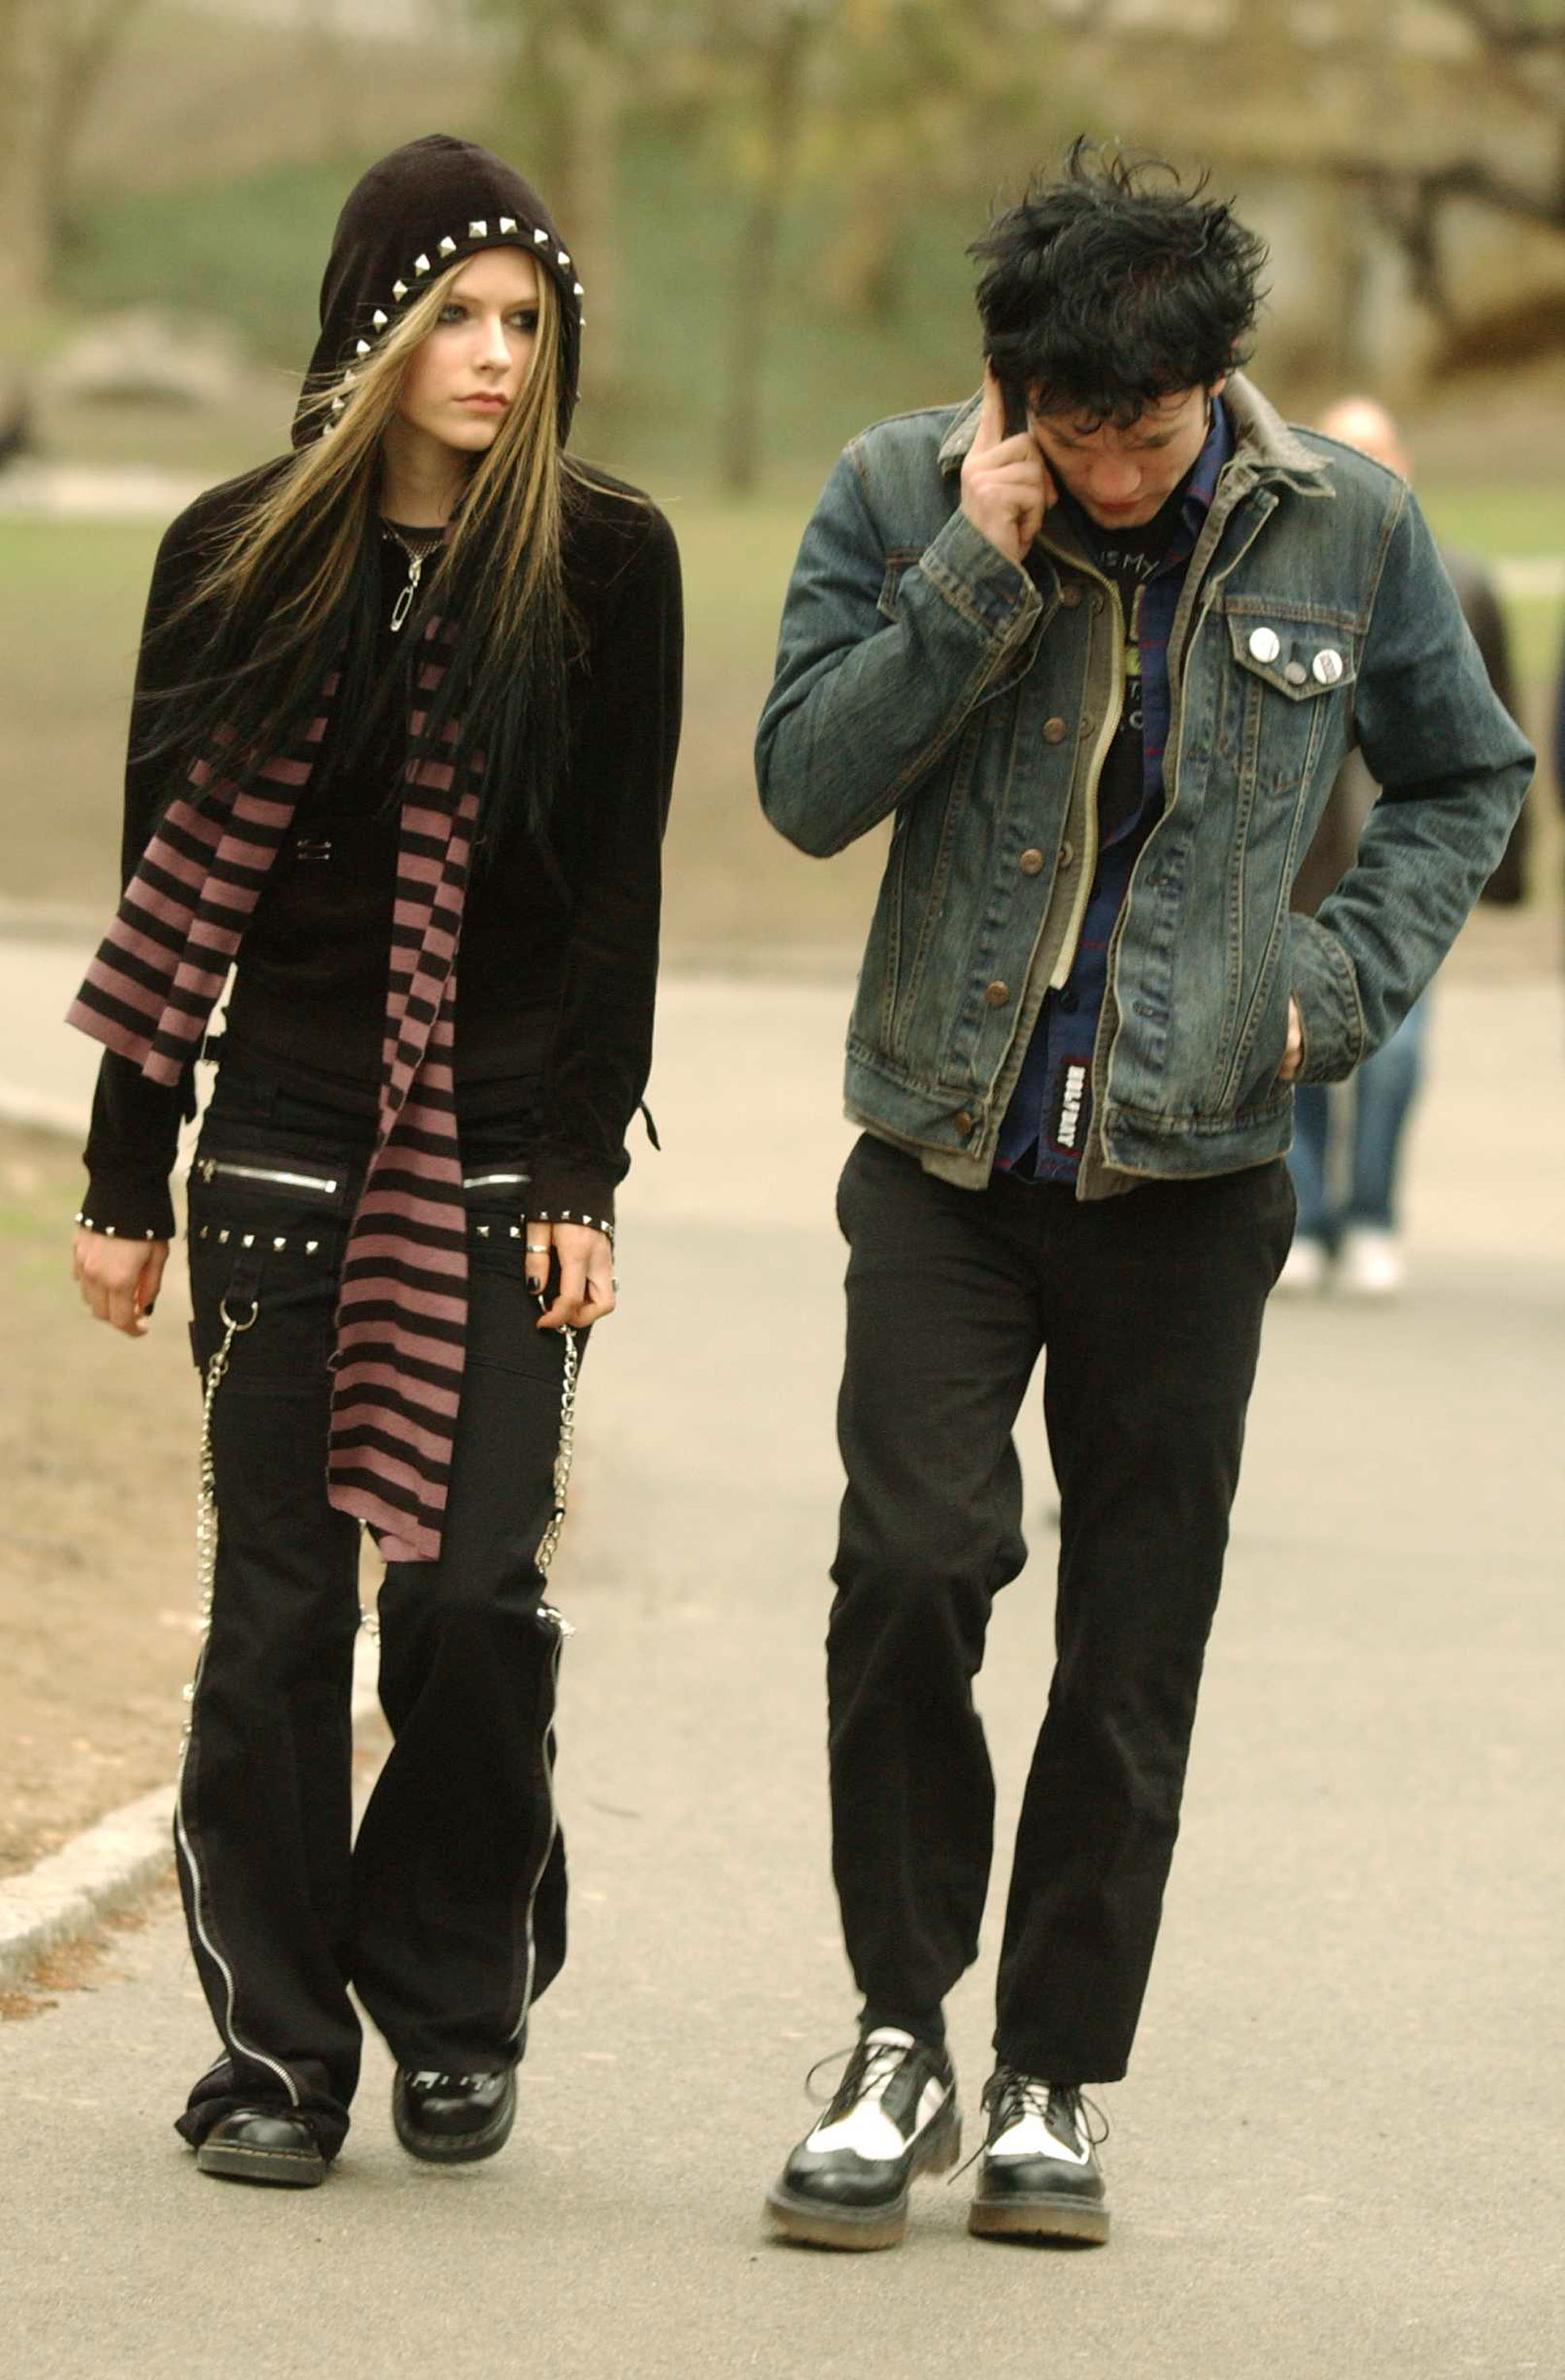 Avril Lavigne walks with Deryck Whibley in Central Park, 2004